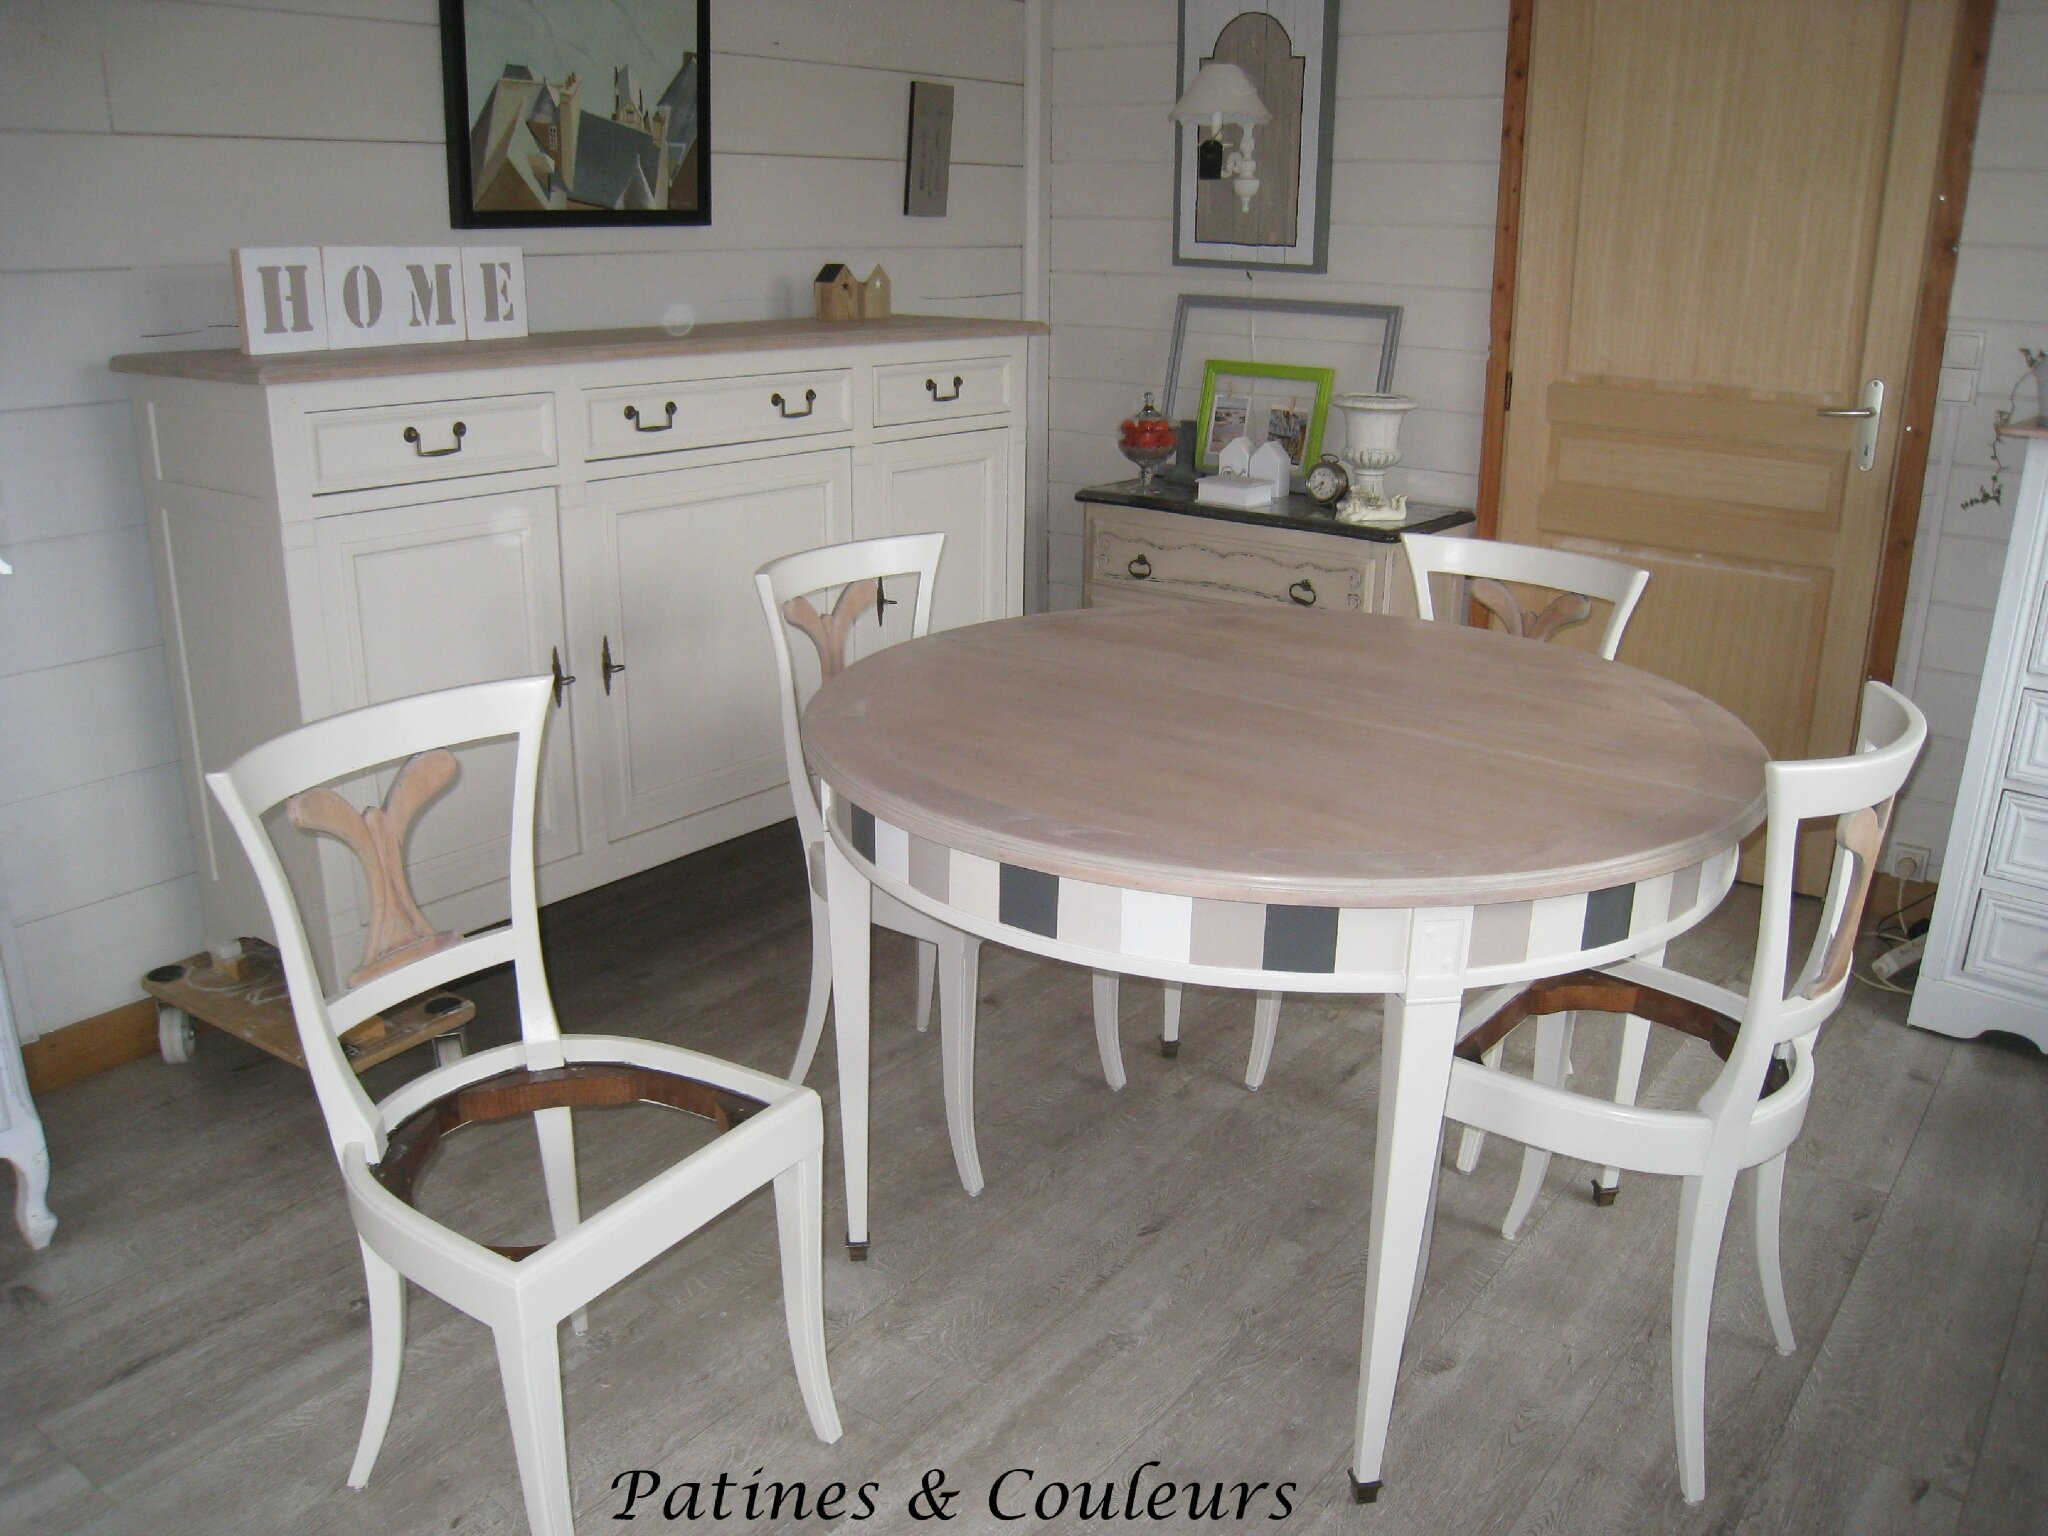 une salle manger en merisier relook e patines couleurs. Black Bedroom Furniture Sets. Home Design Ideas